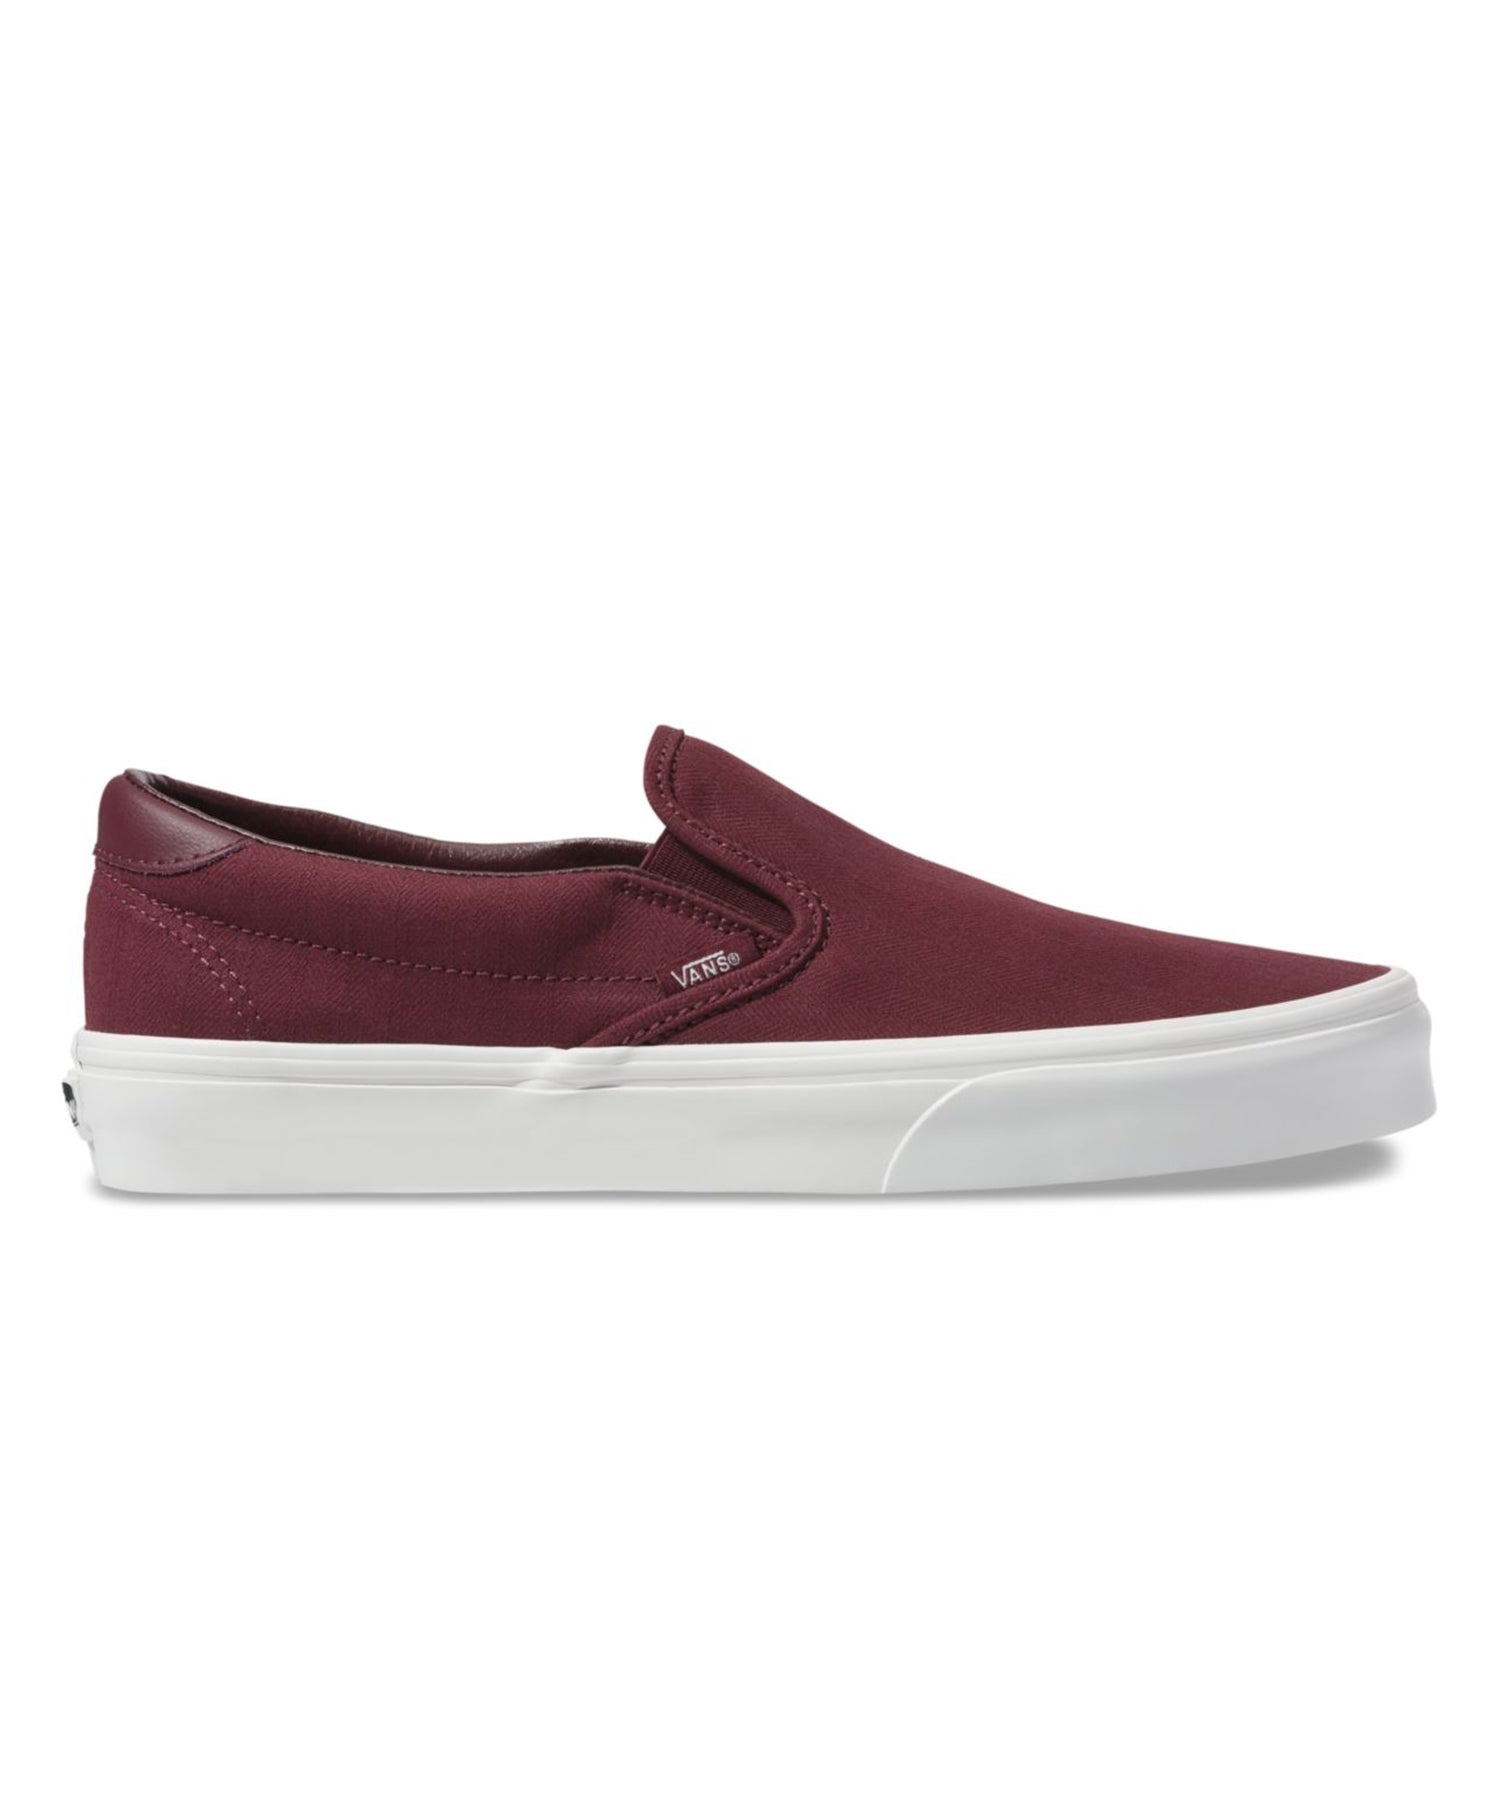 Vans Outdoors Slip-On 59 in Port Royal